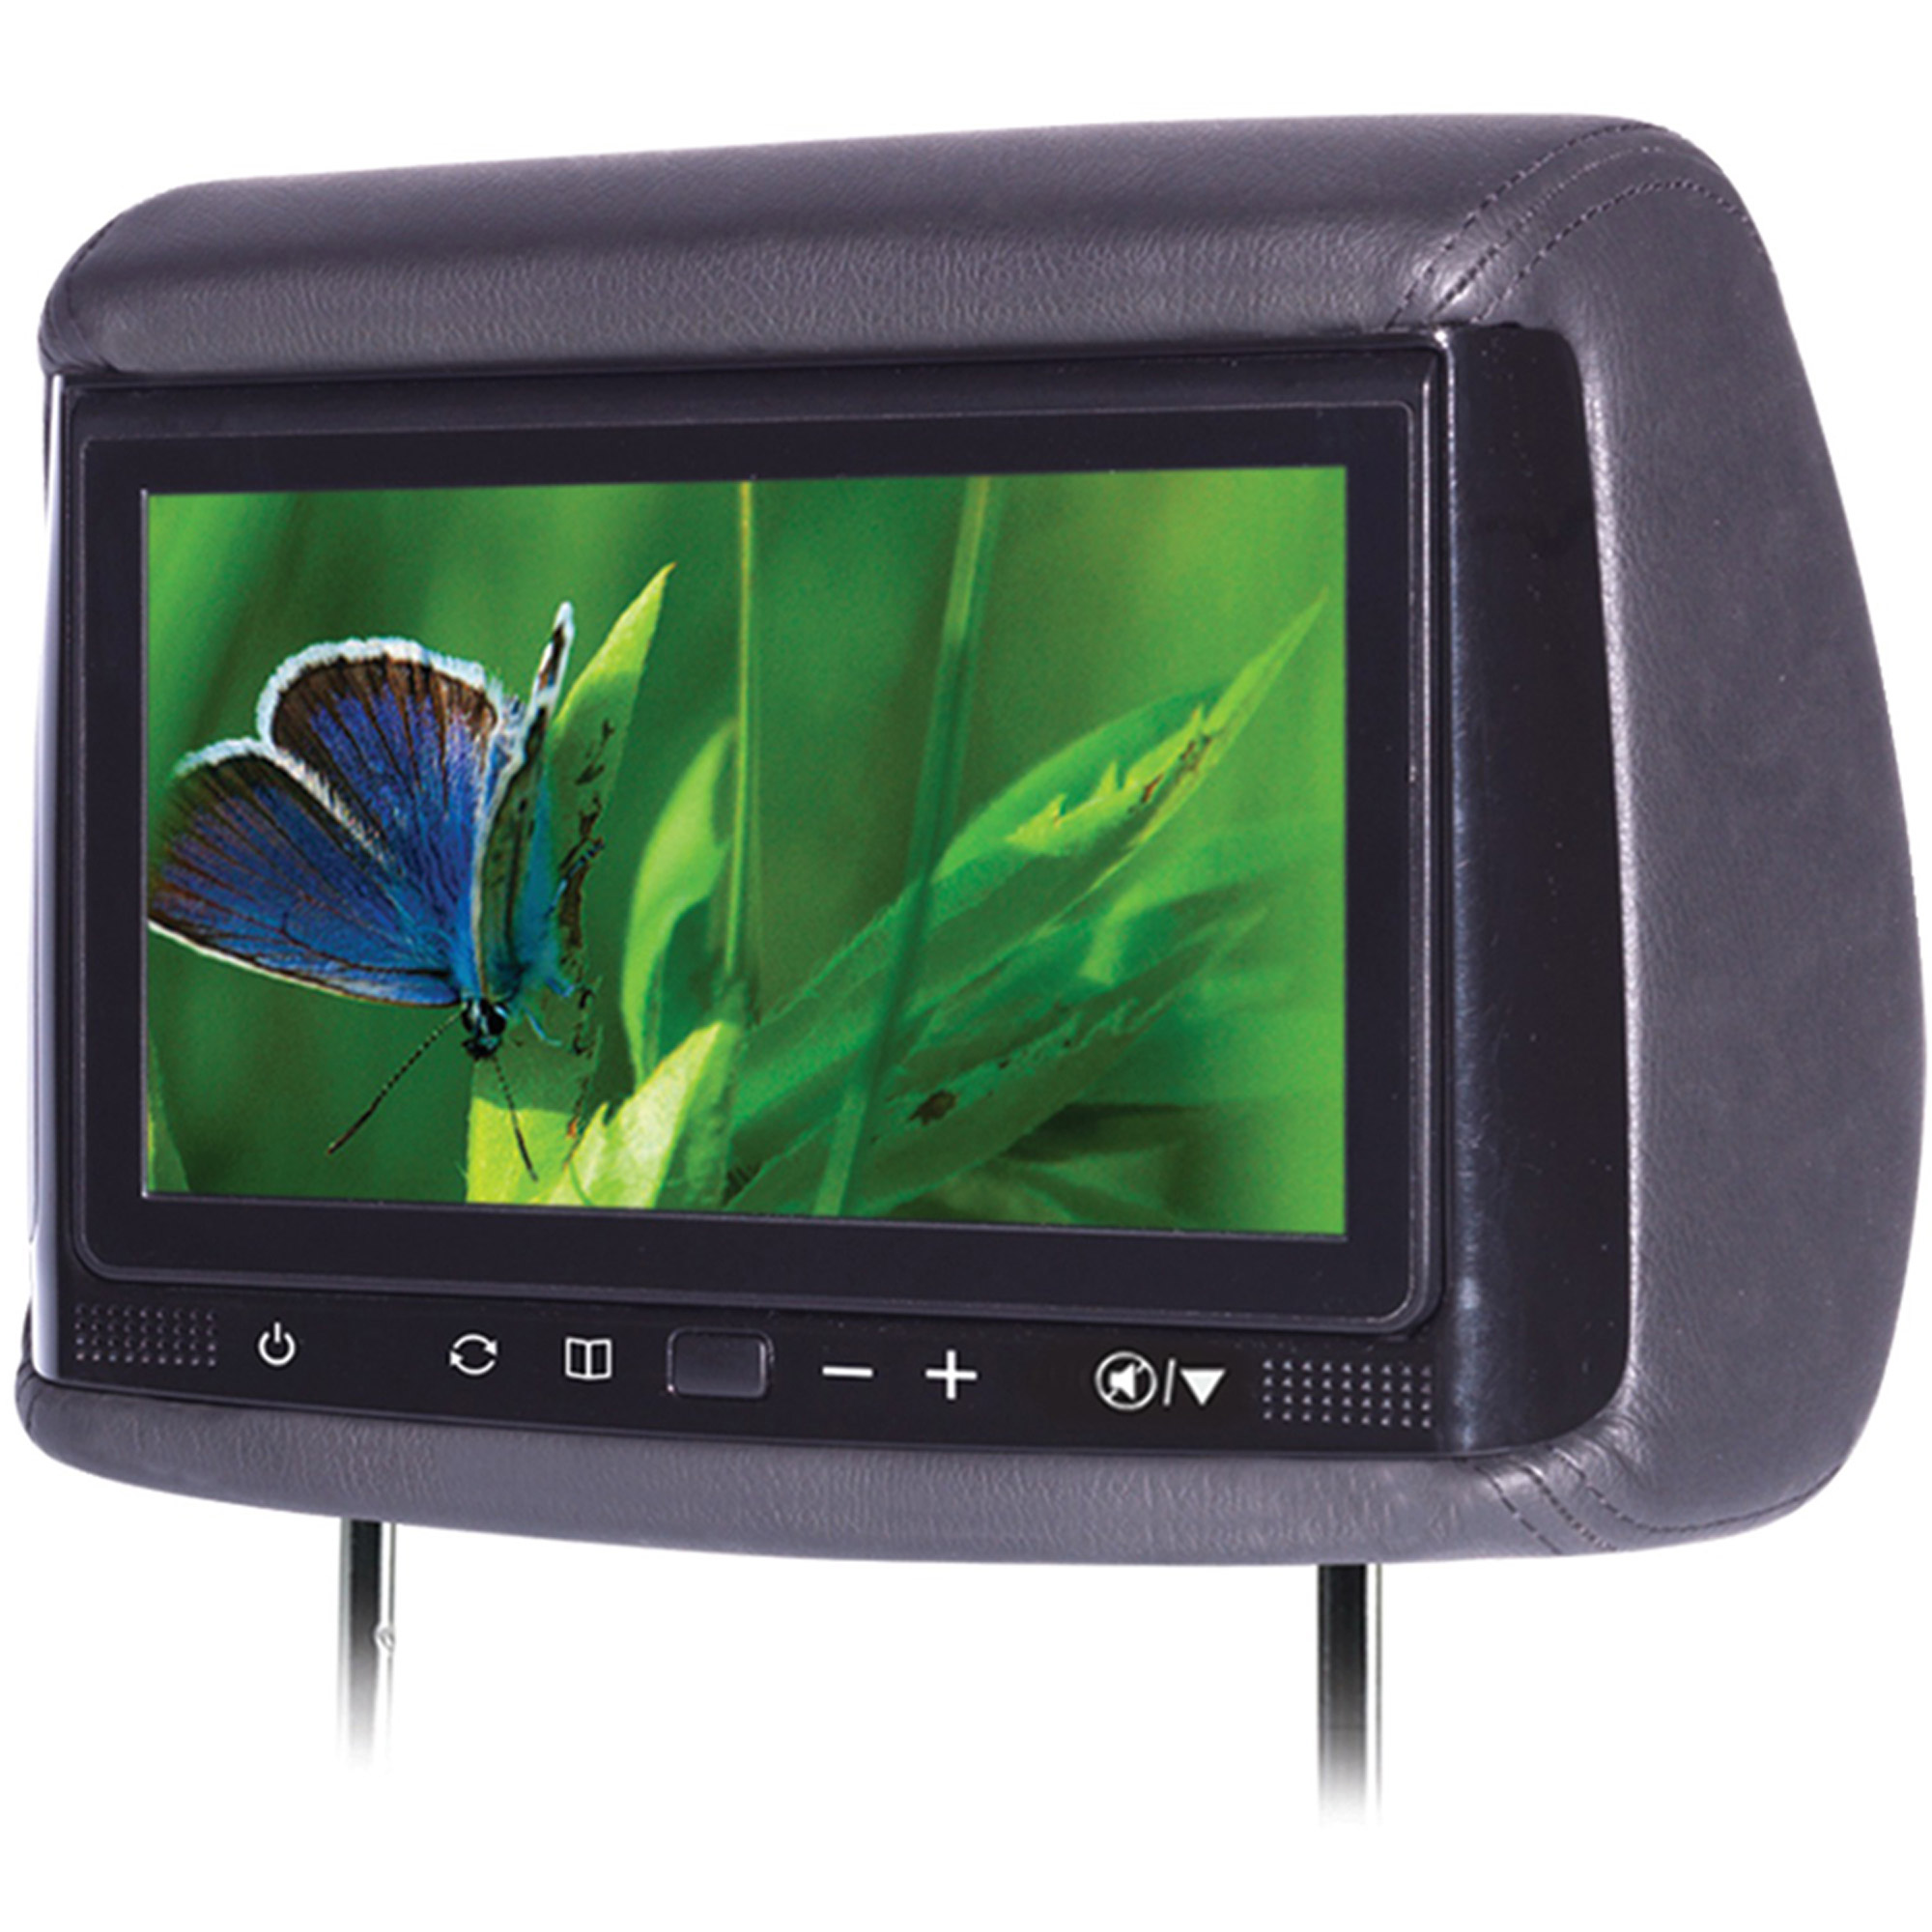 "Concept BSS-705 7"" Chameleon Big Screen LCD Headrest Monitor with 3 Color Covers"